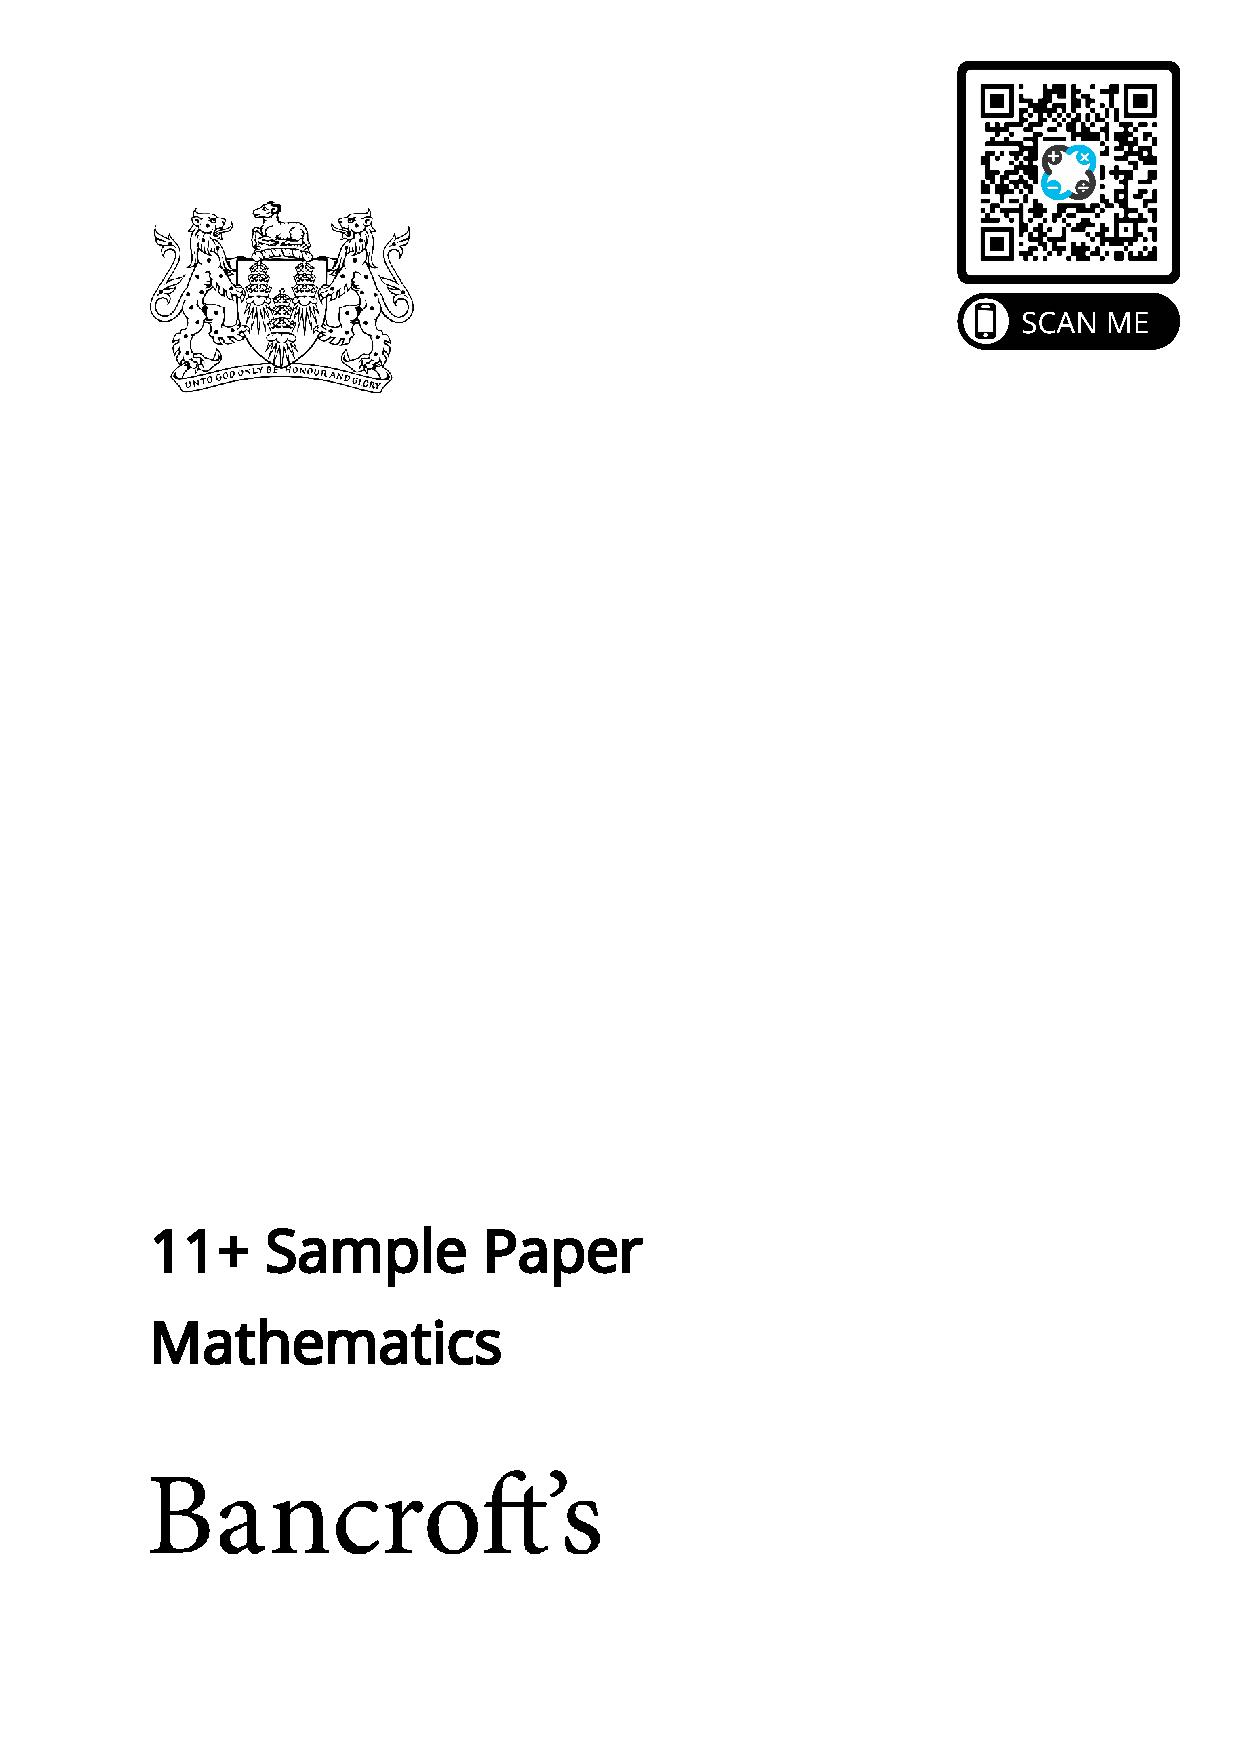 Bancrofts School 11 Plus Maths Sample Paper 2021 entry 1 page 001